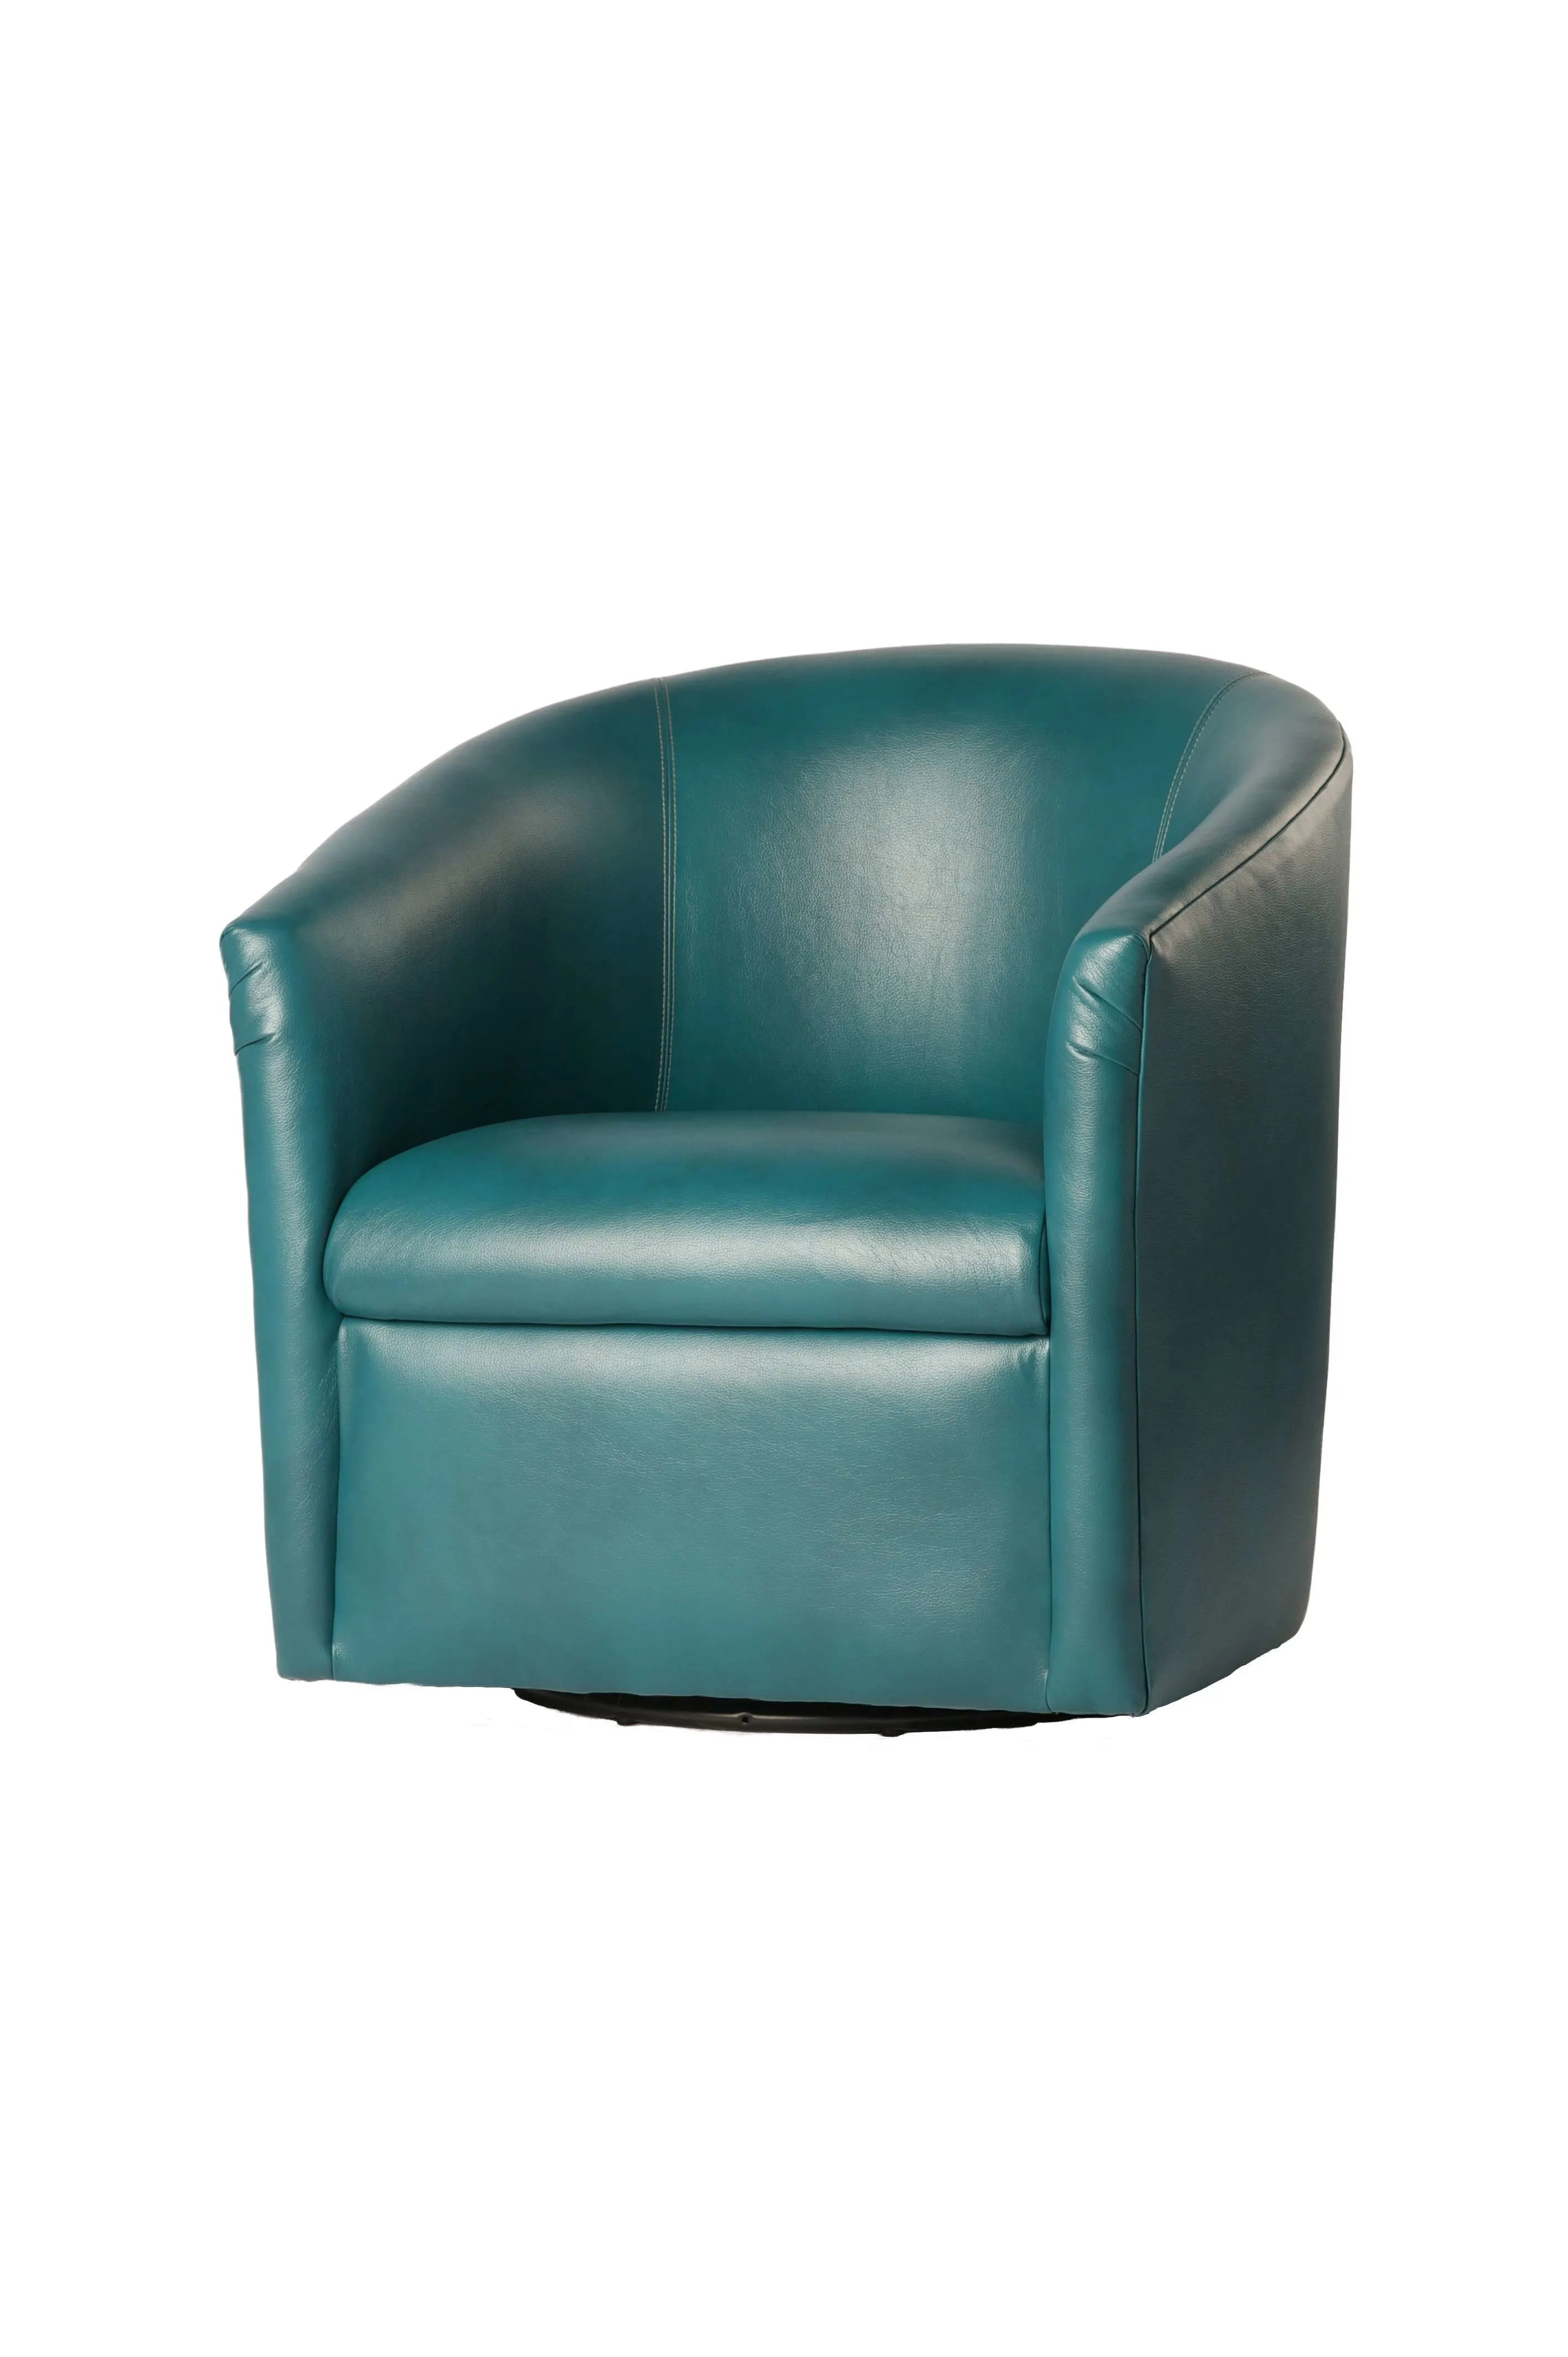 comfortable swivel chair potty for older child comfort pointe draper agean reviews goedekers com